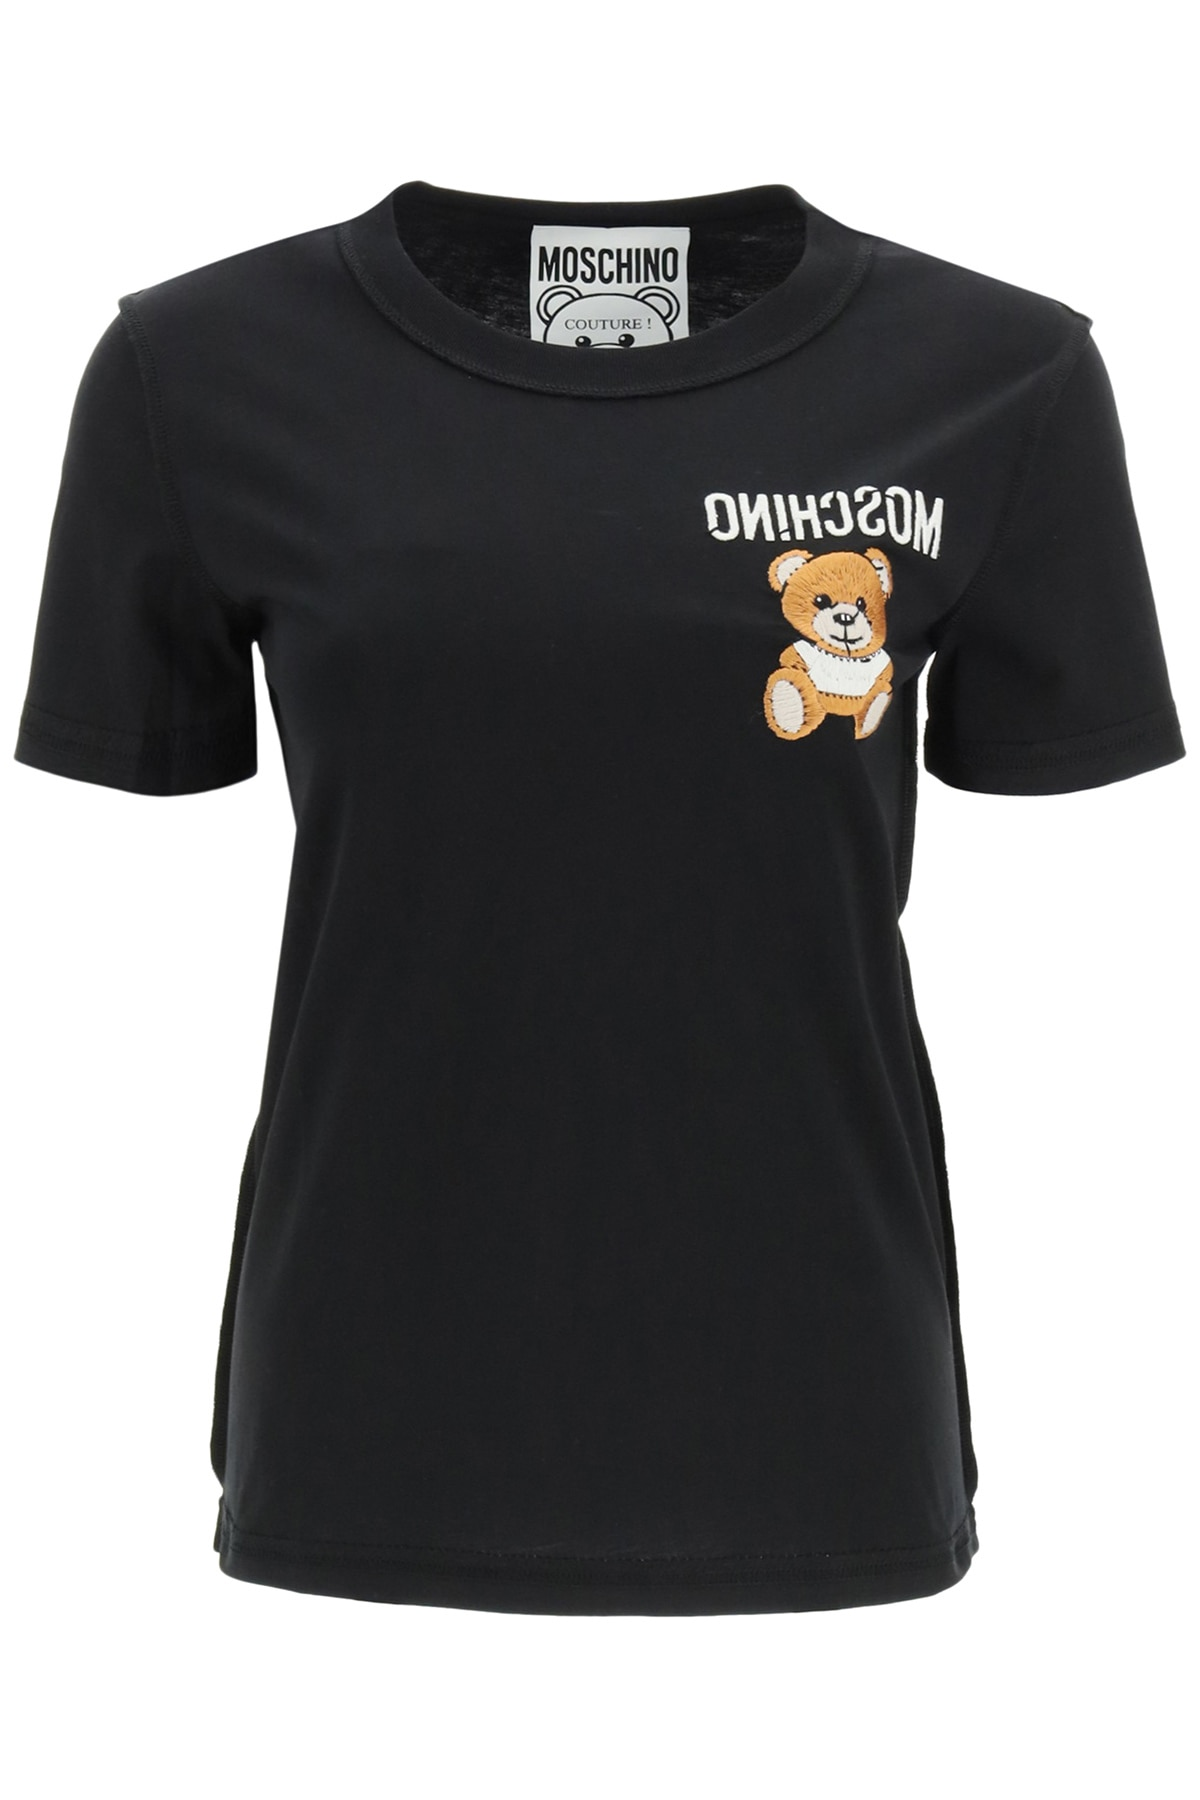 Moschino Cottons TEDDY BEAR EMBROIDERY T-SHIRT